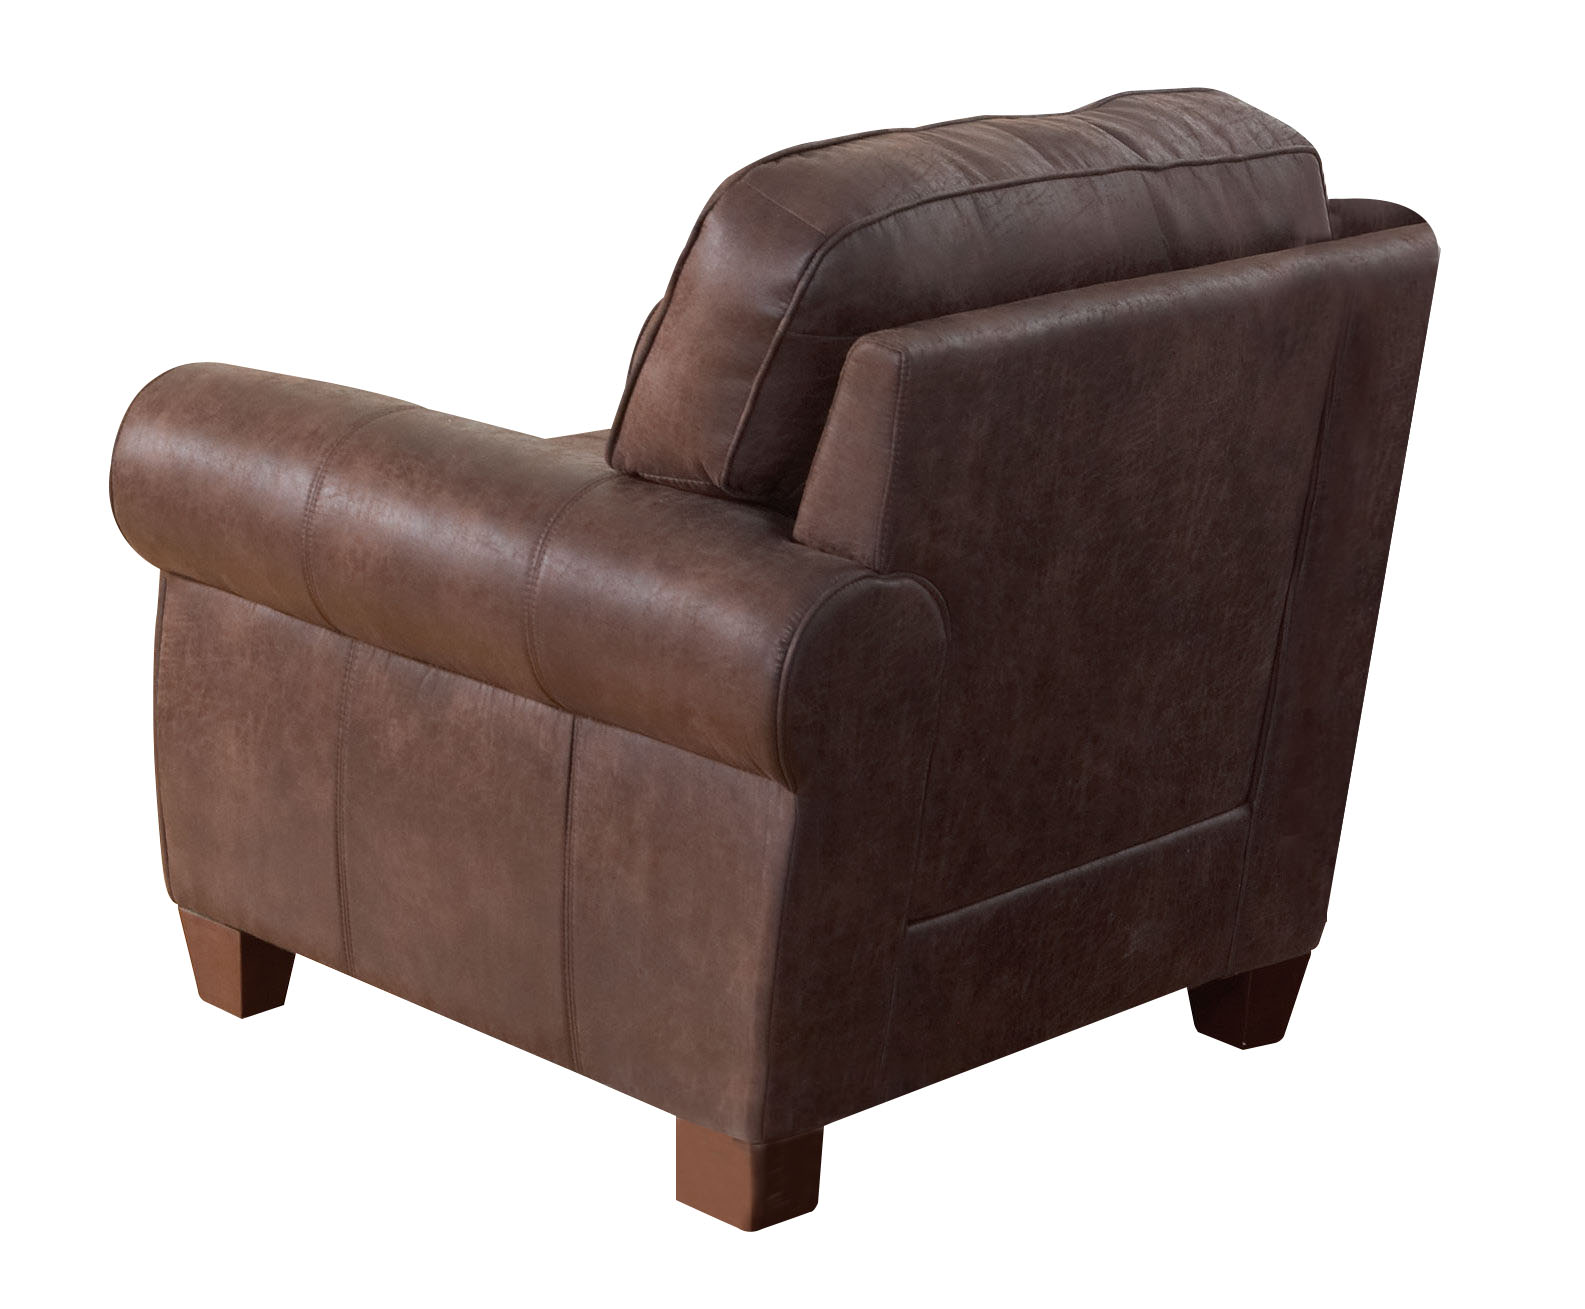 Stationary Chair Coaster Bentley Coated Microfiber Stationary Chair In Brown 504203